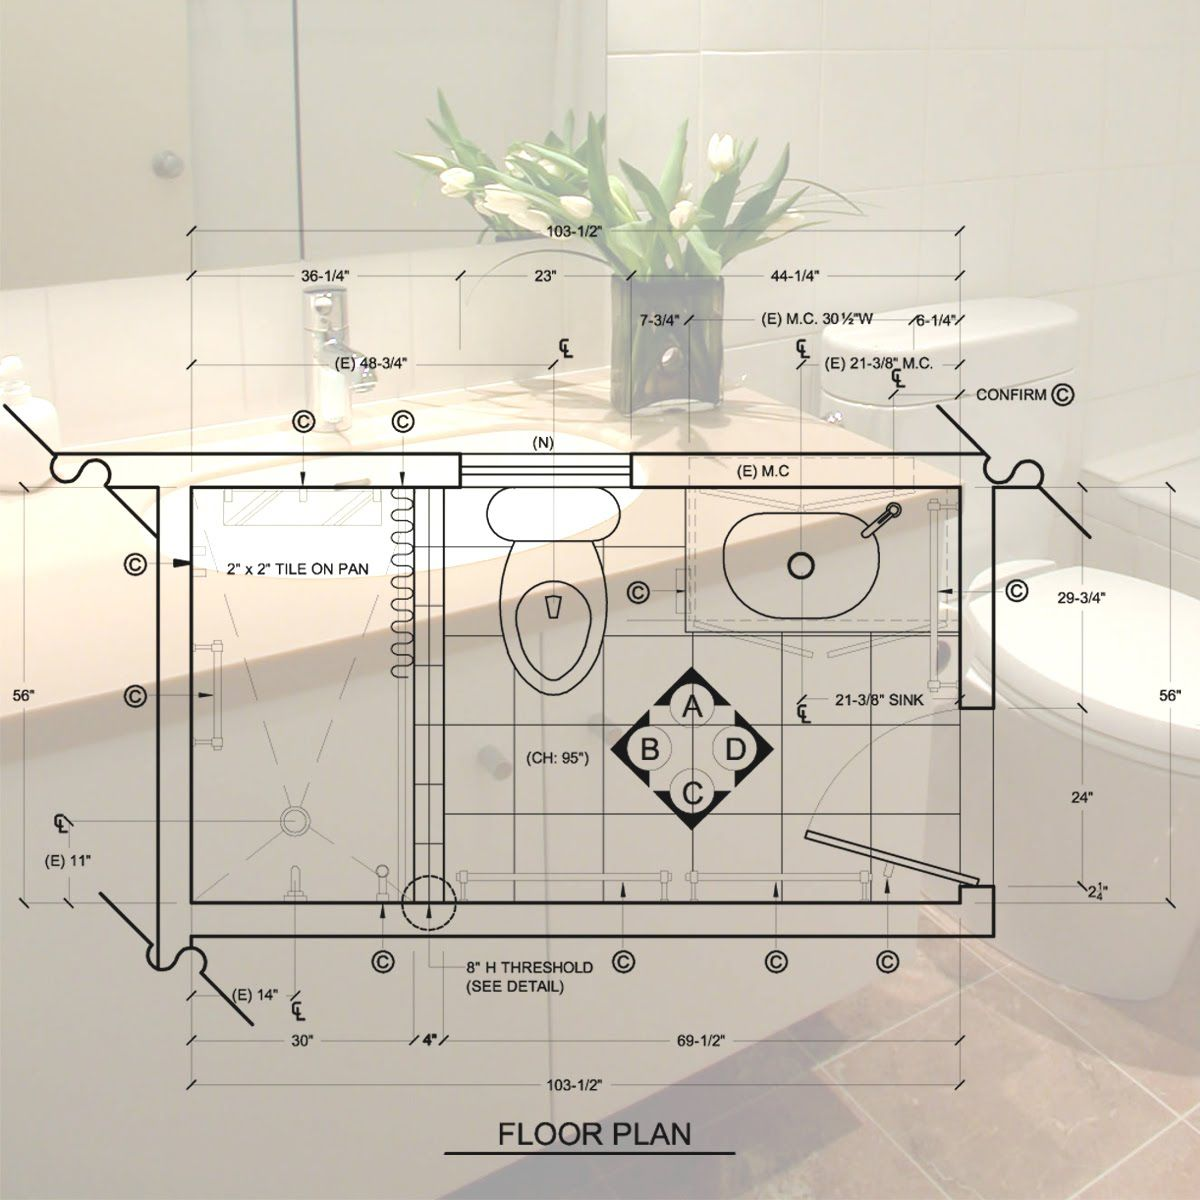 Bathroom Designs Plans 8 x 7 bathroom layout ideas | ideas | pinterest | bathroom layout